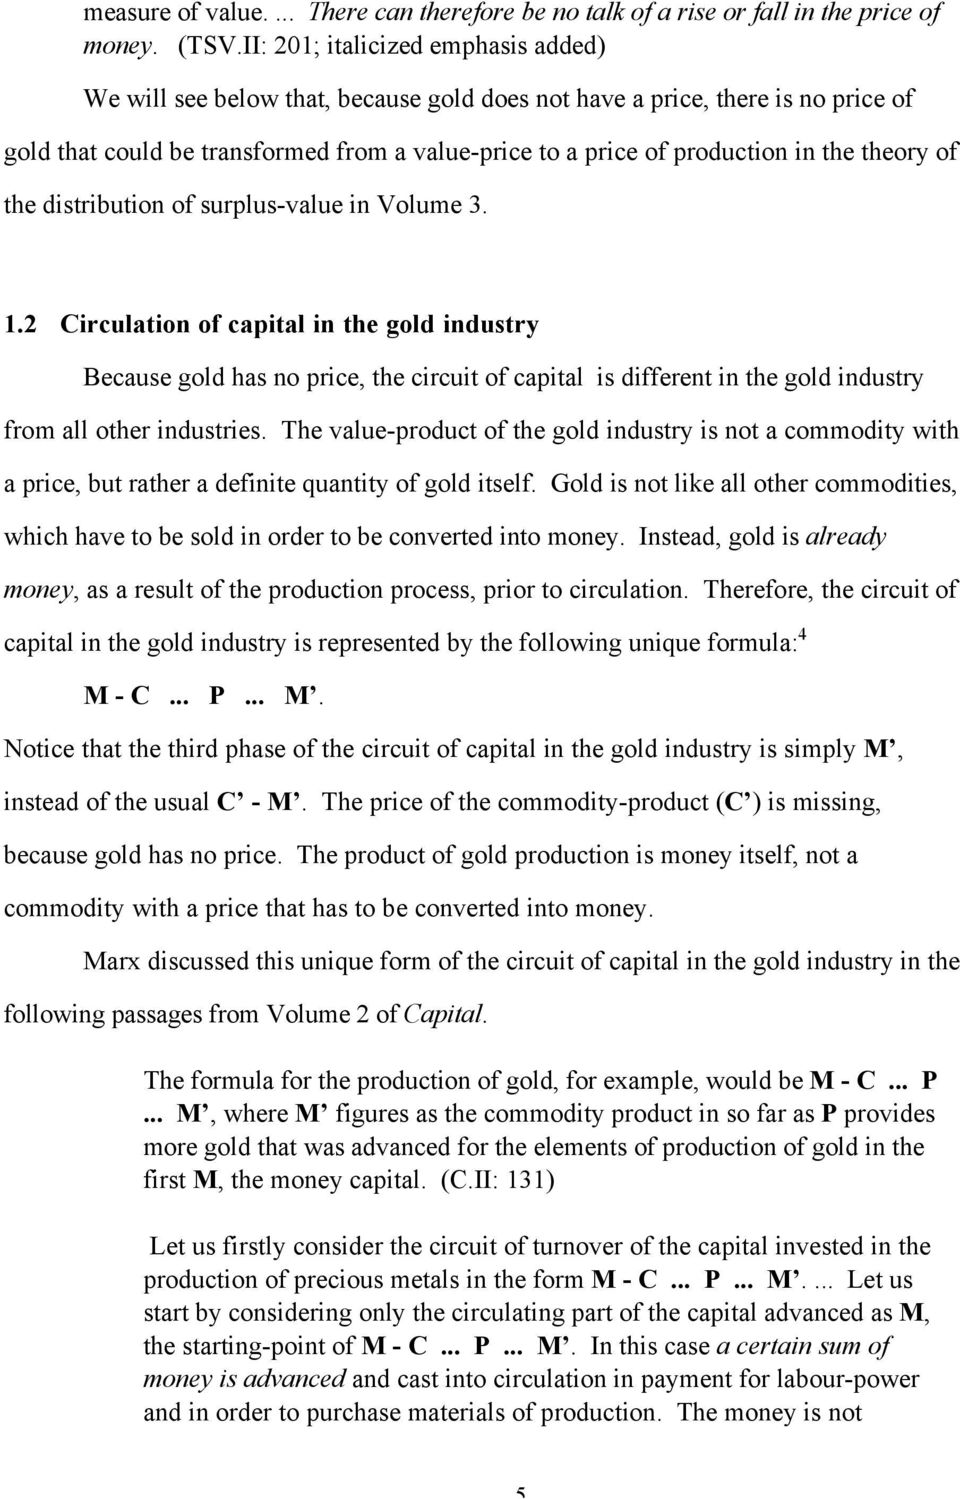 theory of the distribution of surplus-value in Volume 3. 1.